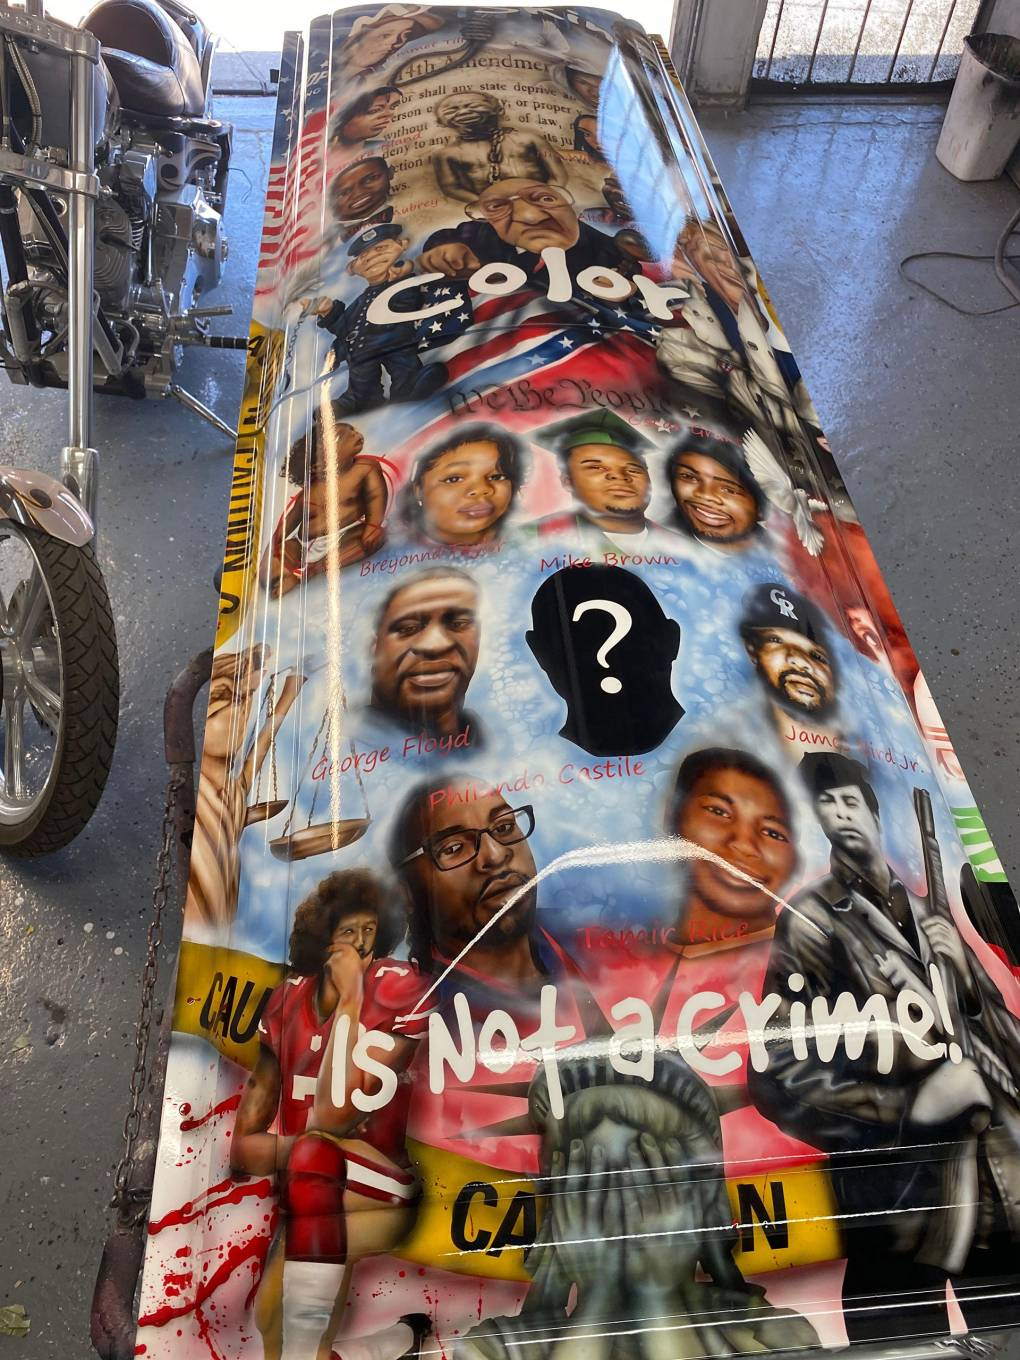 Sandra Bland, the 14th Amendment, an enslaved young man, Trayvon Martin and Nia Wilson all grace the casket created by DeAndre Drake.